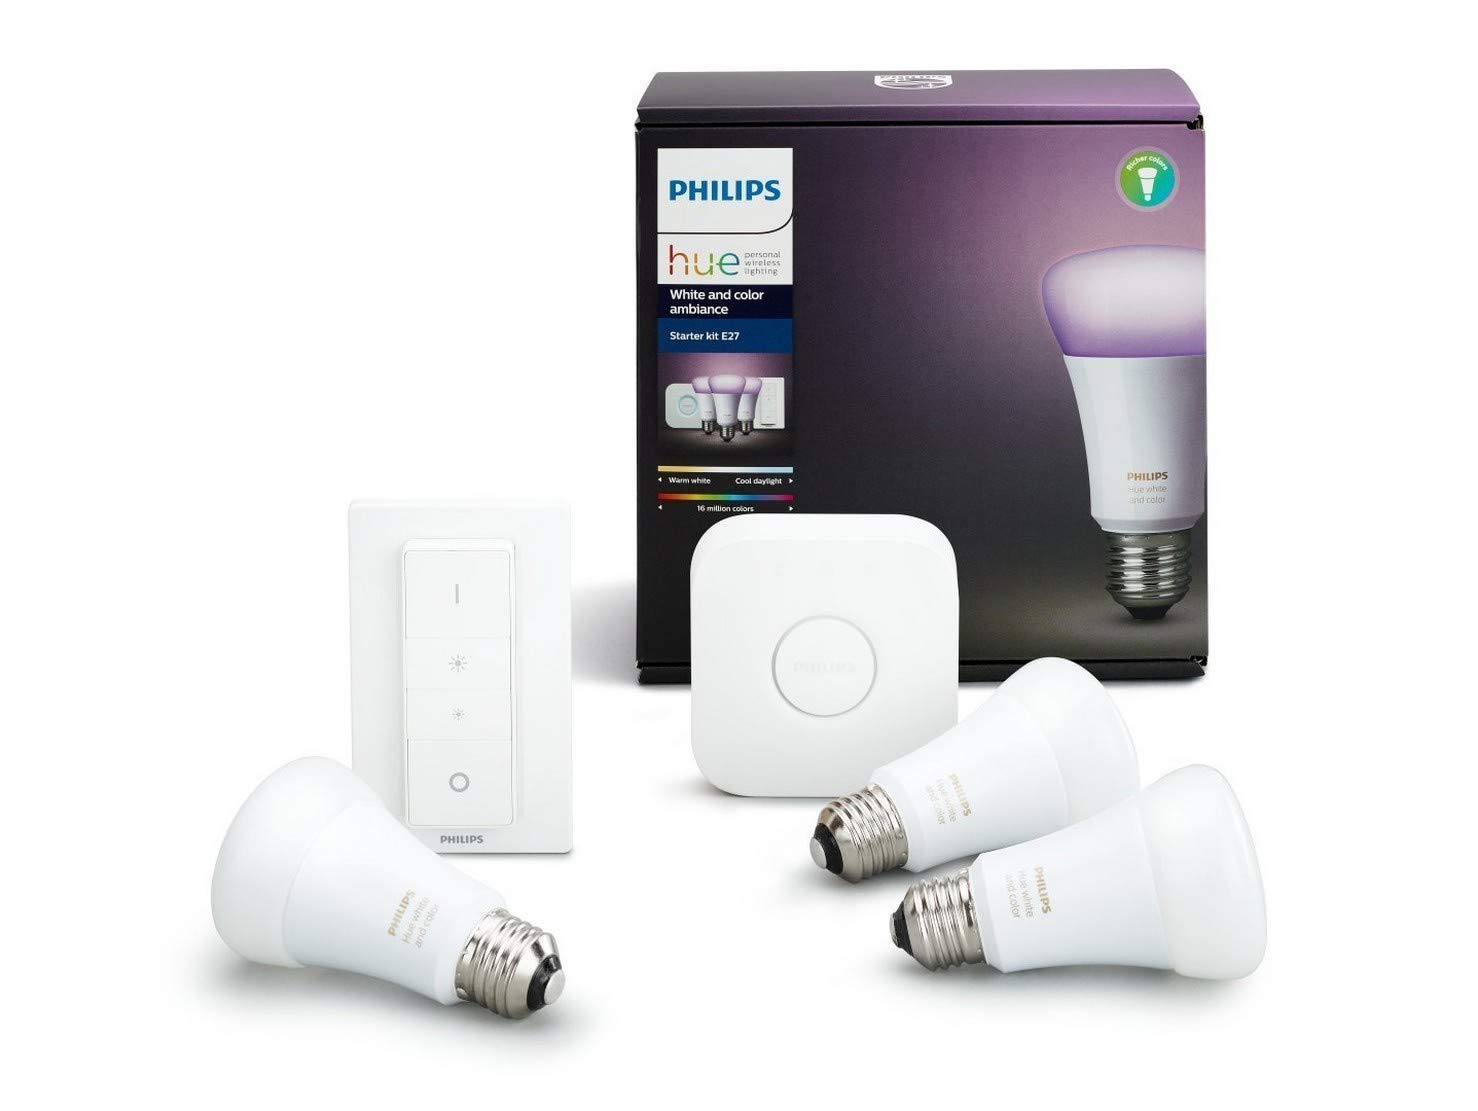 https://www.amazon.it/gp/search/ref=as_li_qf_sp_sr_tl?ie=UTF8&tag=coffeebreakaf-21&keywords=Philips Hue White and Color Ambiance Starter&index=aps&camp=3414&creative=21718&linkCode=ur2&linkId=f26d71c47343d80b8b1370fba31b2113